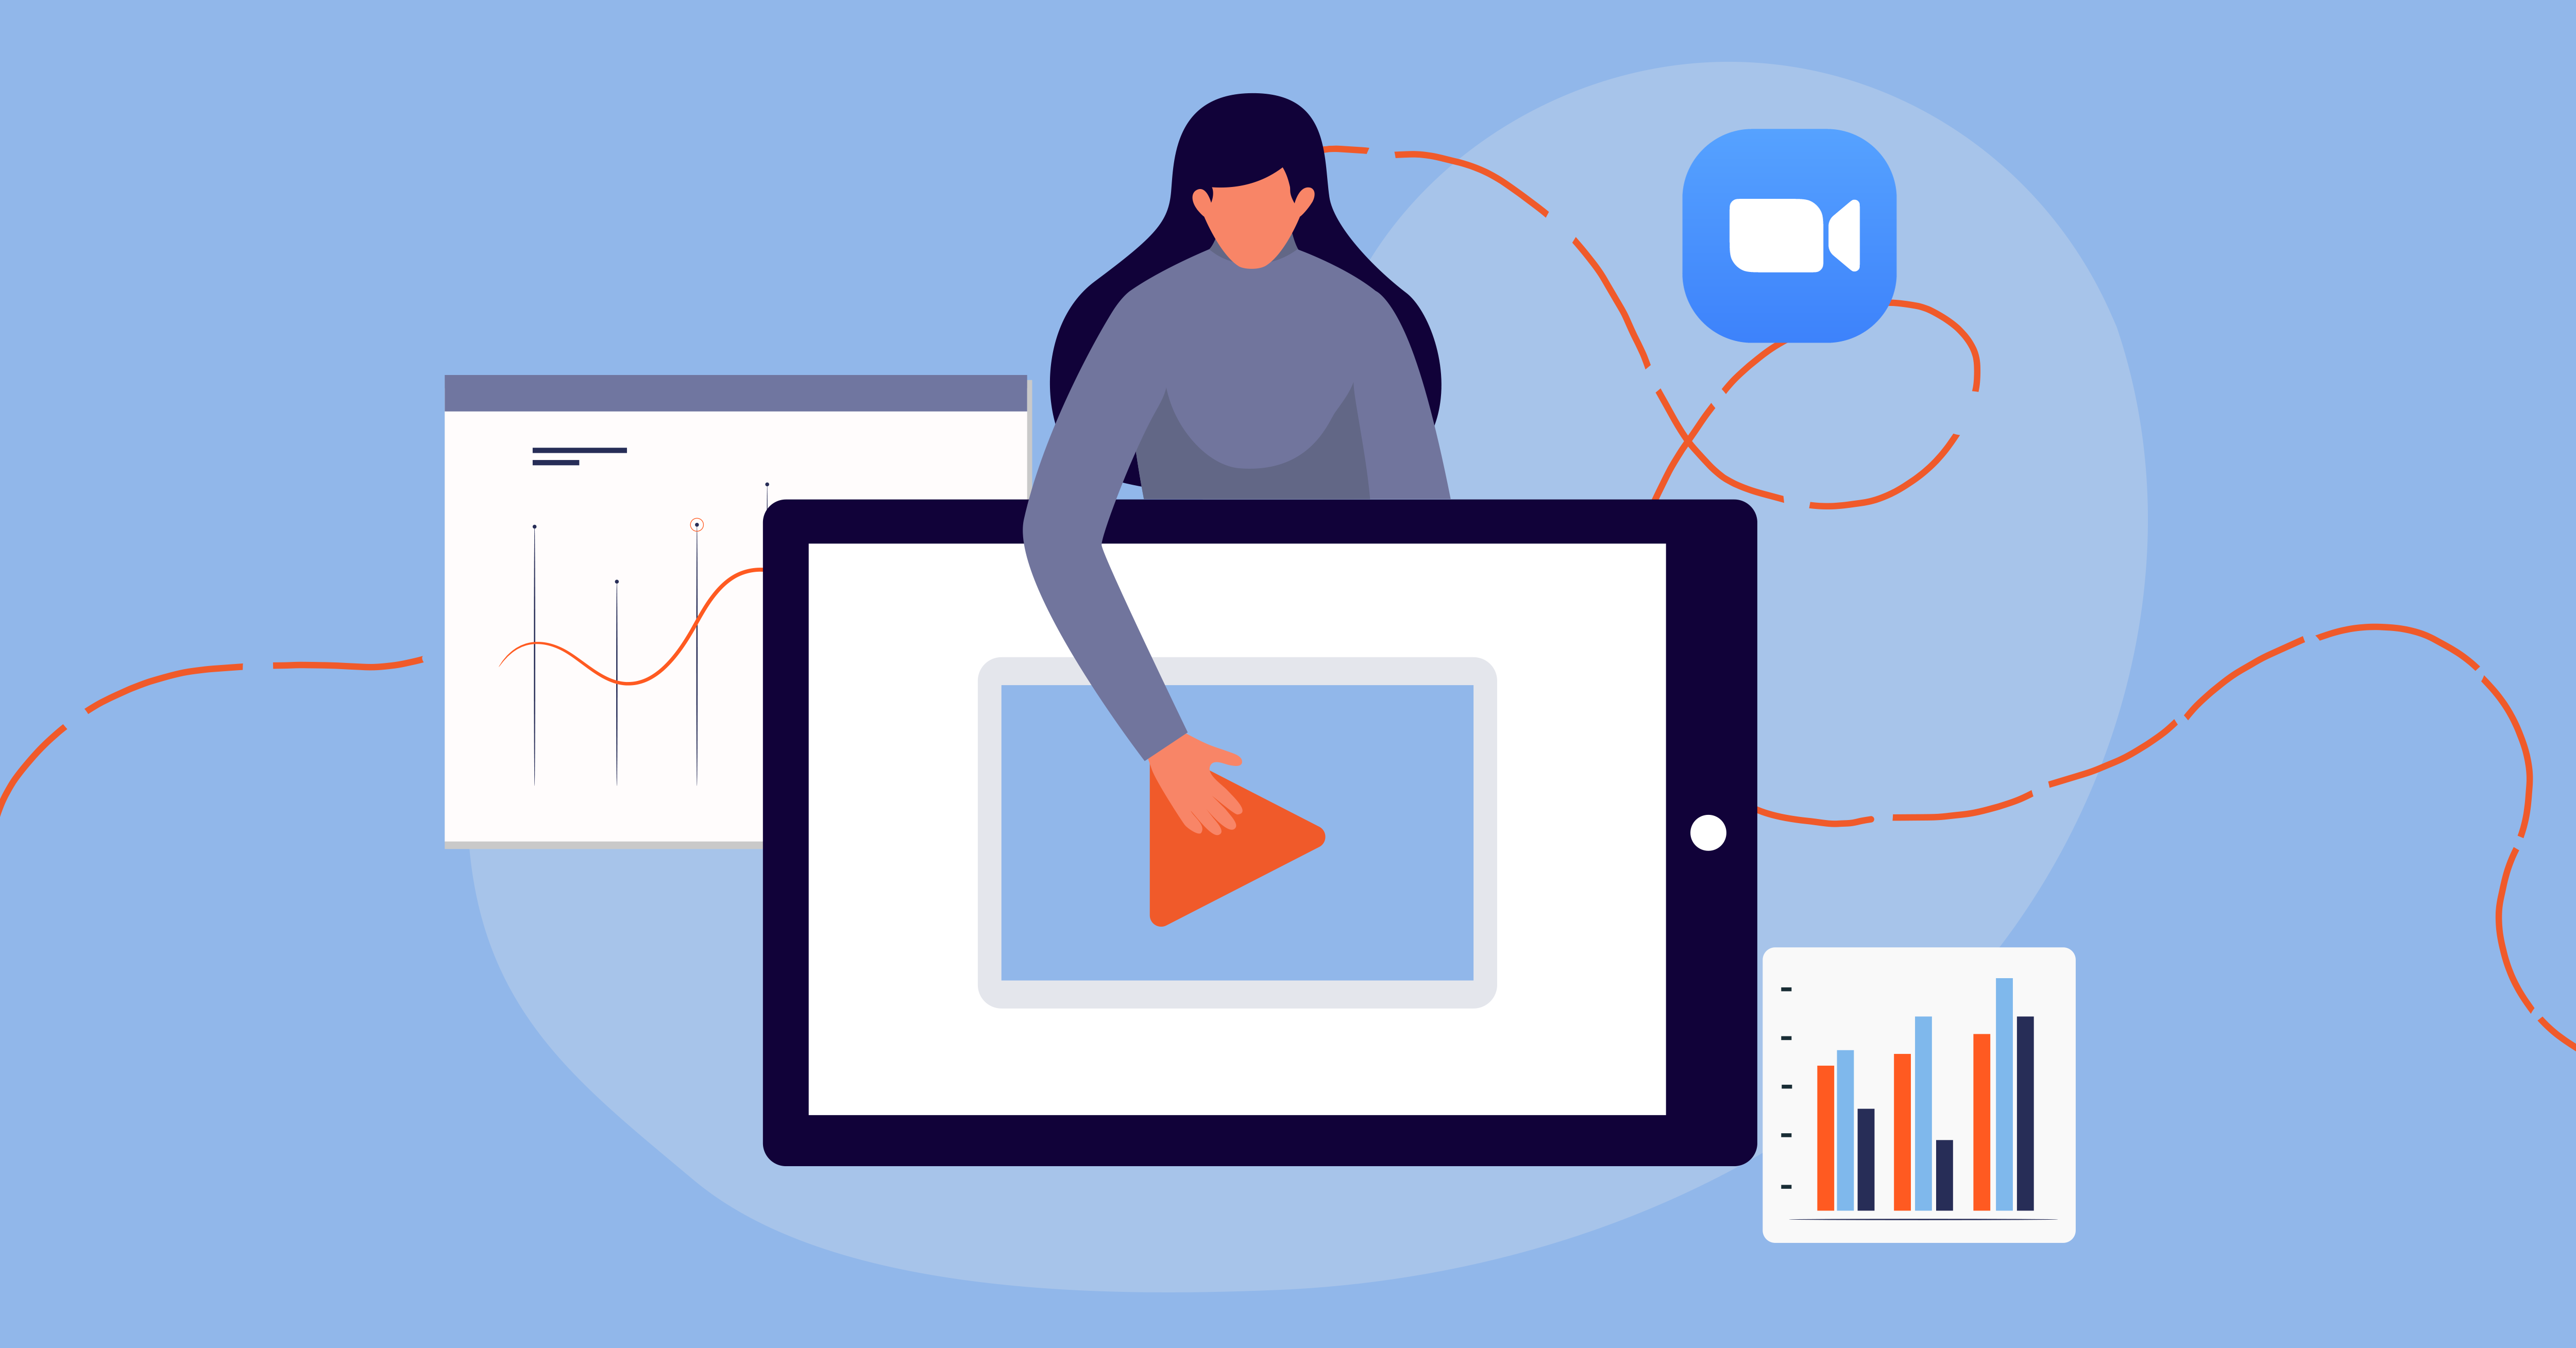 https://spotme.com/wp-content/uploads/2020/12/Hero_Virtual-Platforms-that-Integrate-With-Zoom.png